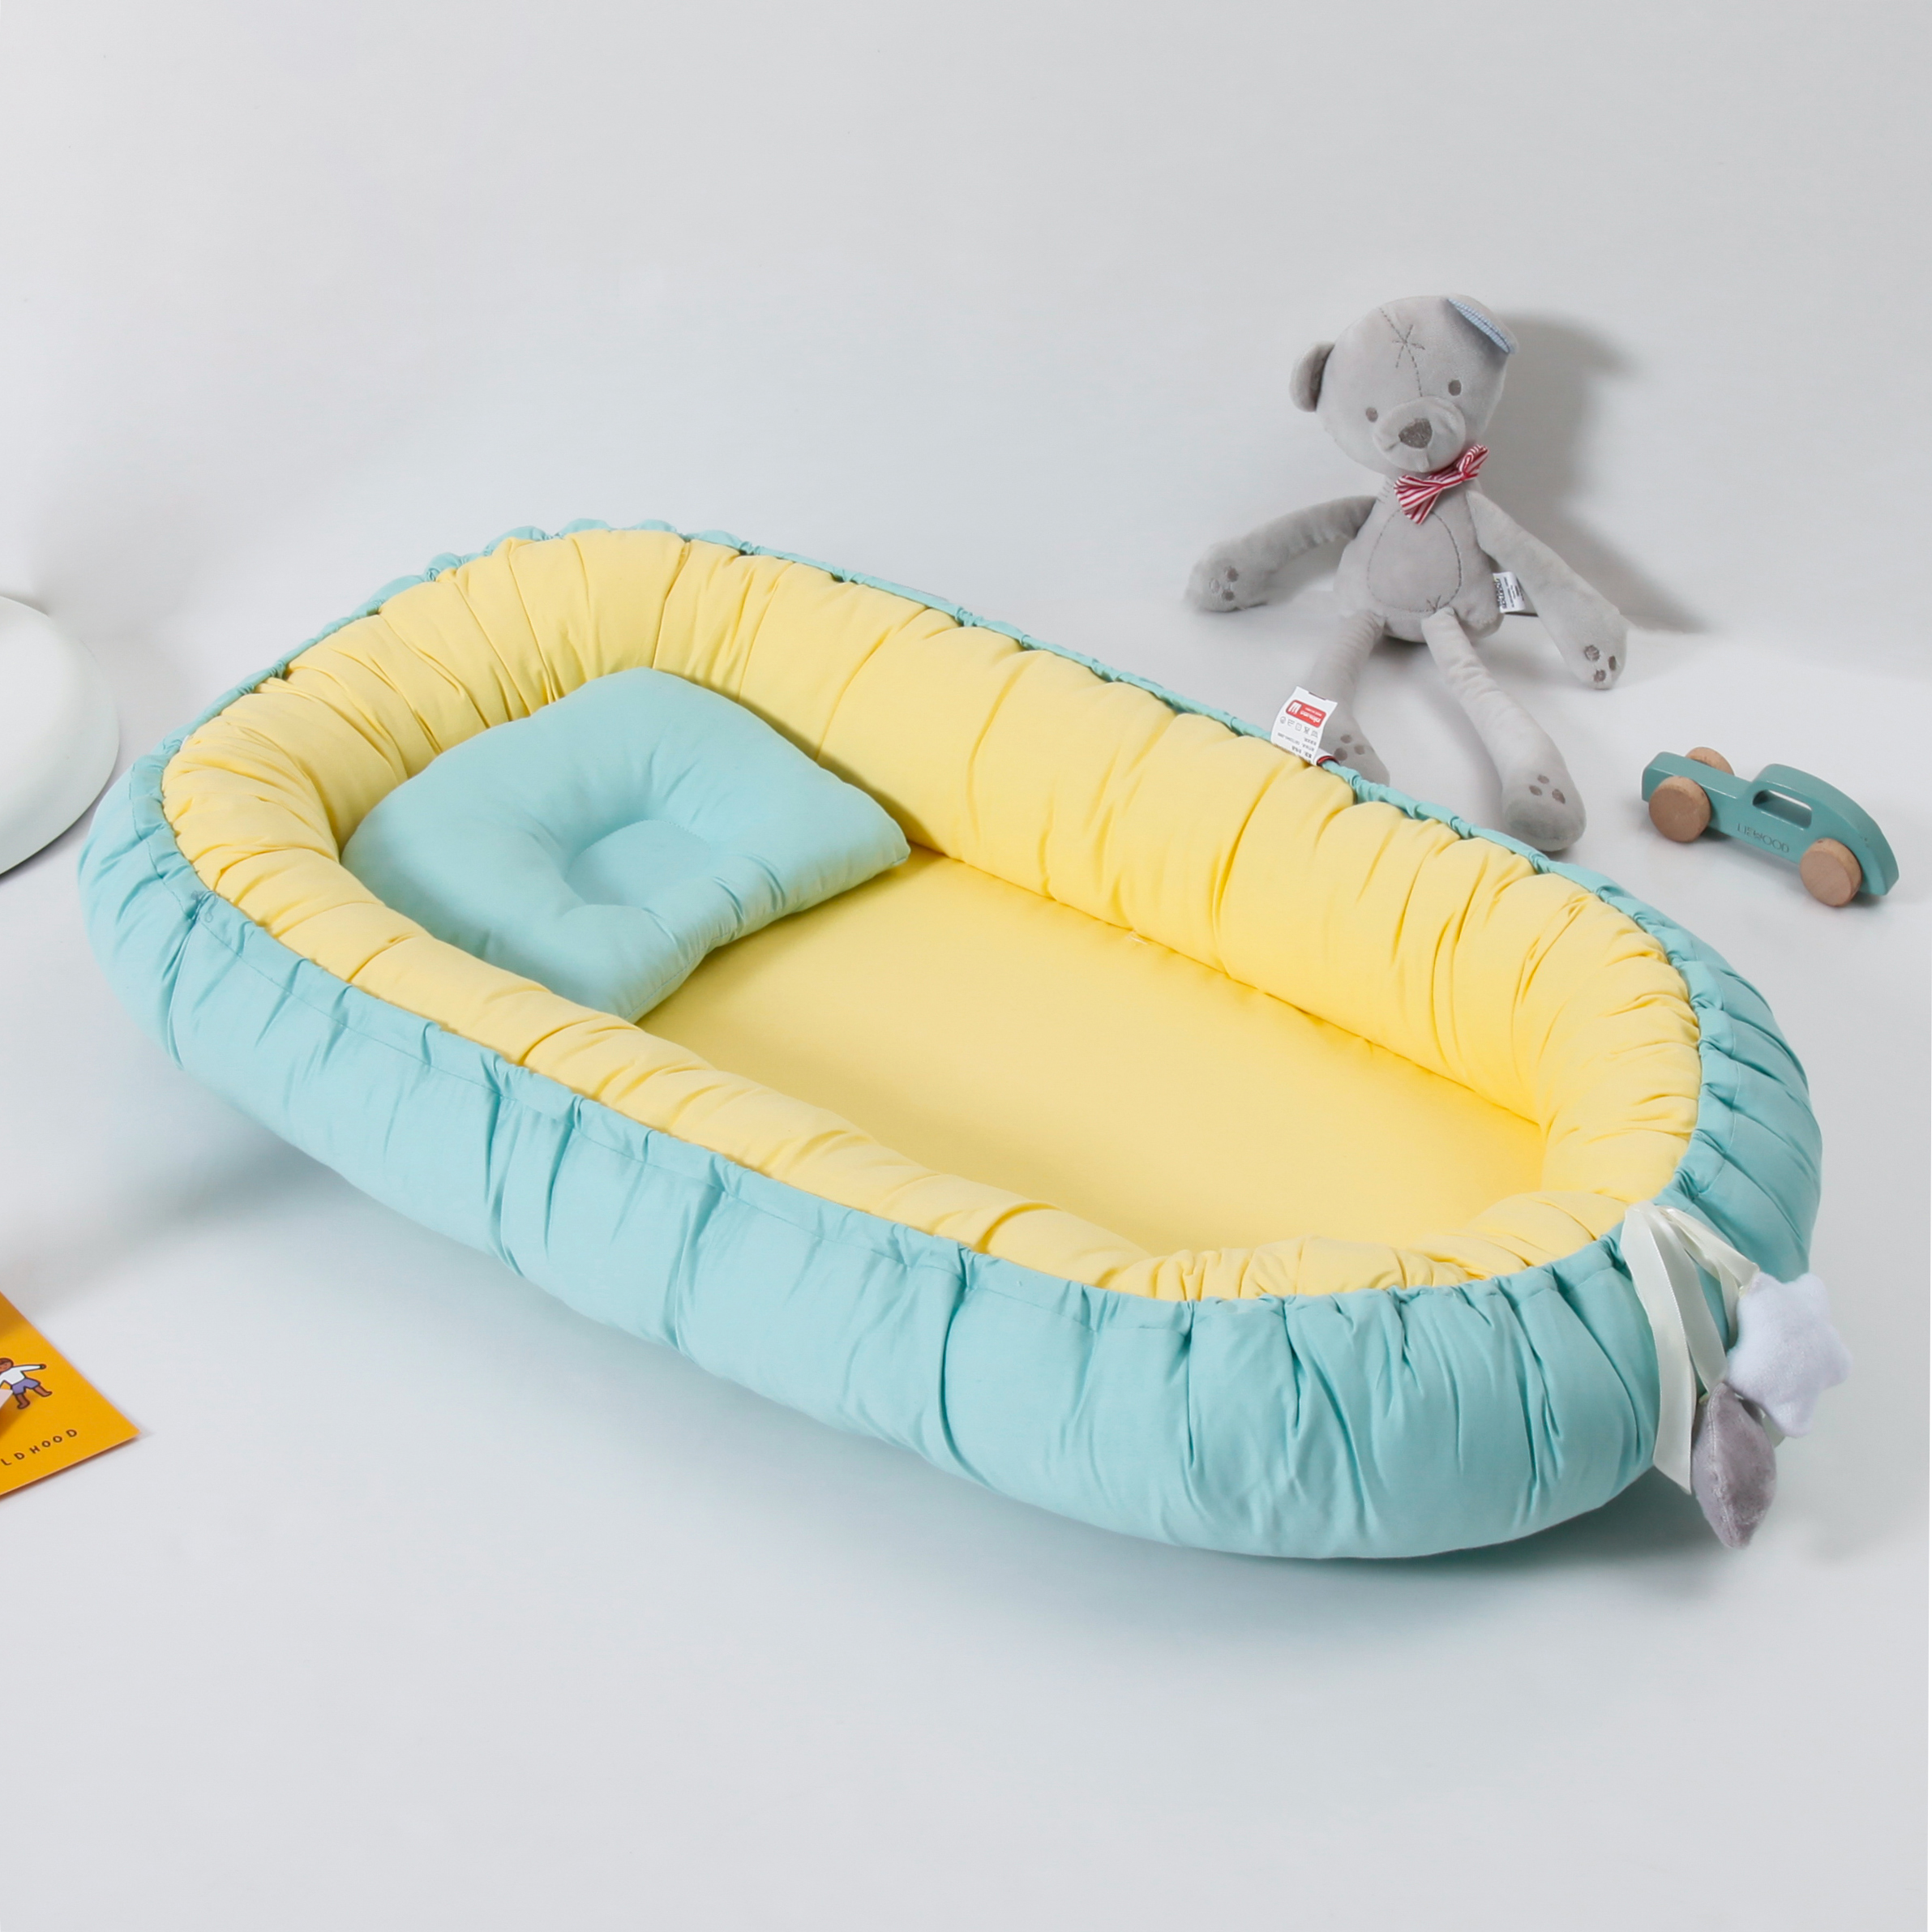 Baby Crib  Portable Baby Cot With Pillow Travel Bed Crib Cots Cushion Baby Bed For Newborns Infant Cradle Crib  Baby Nest